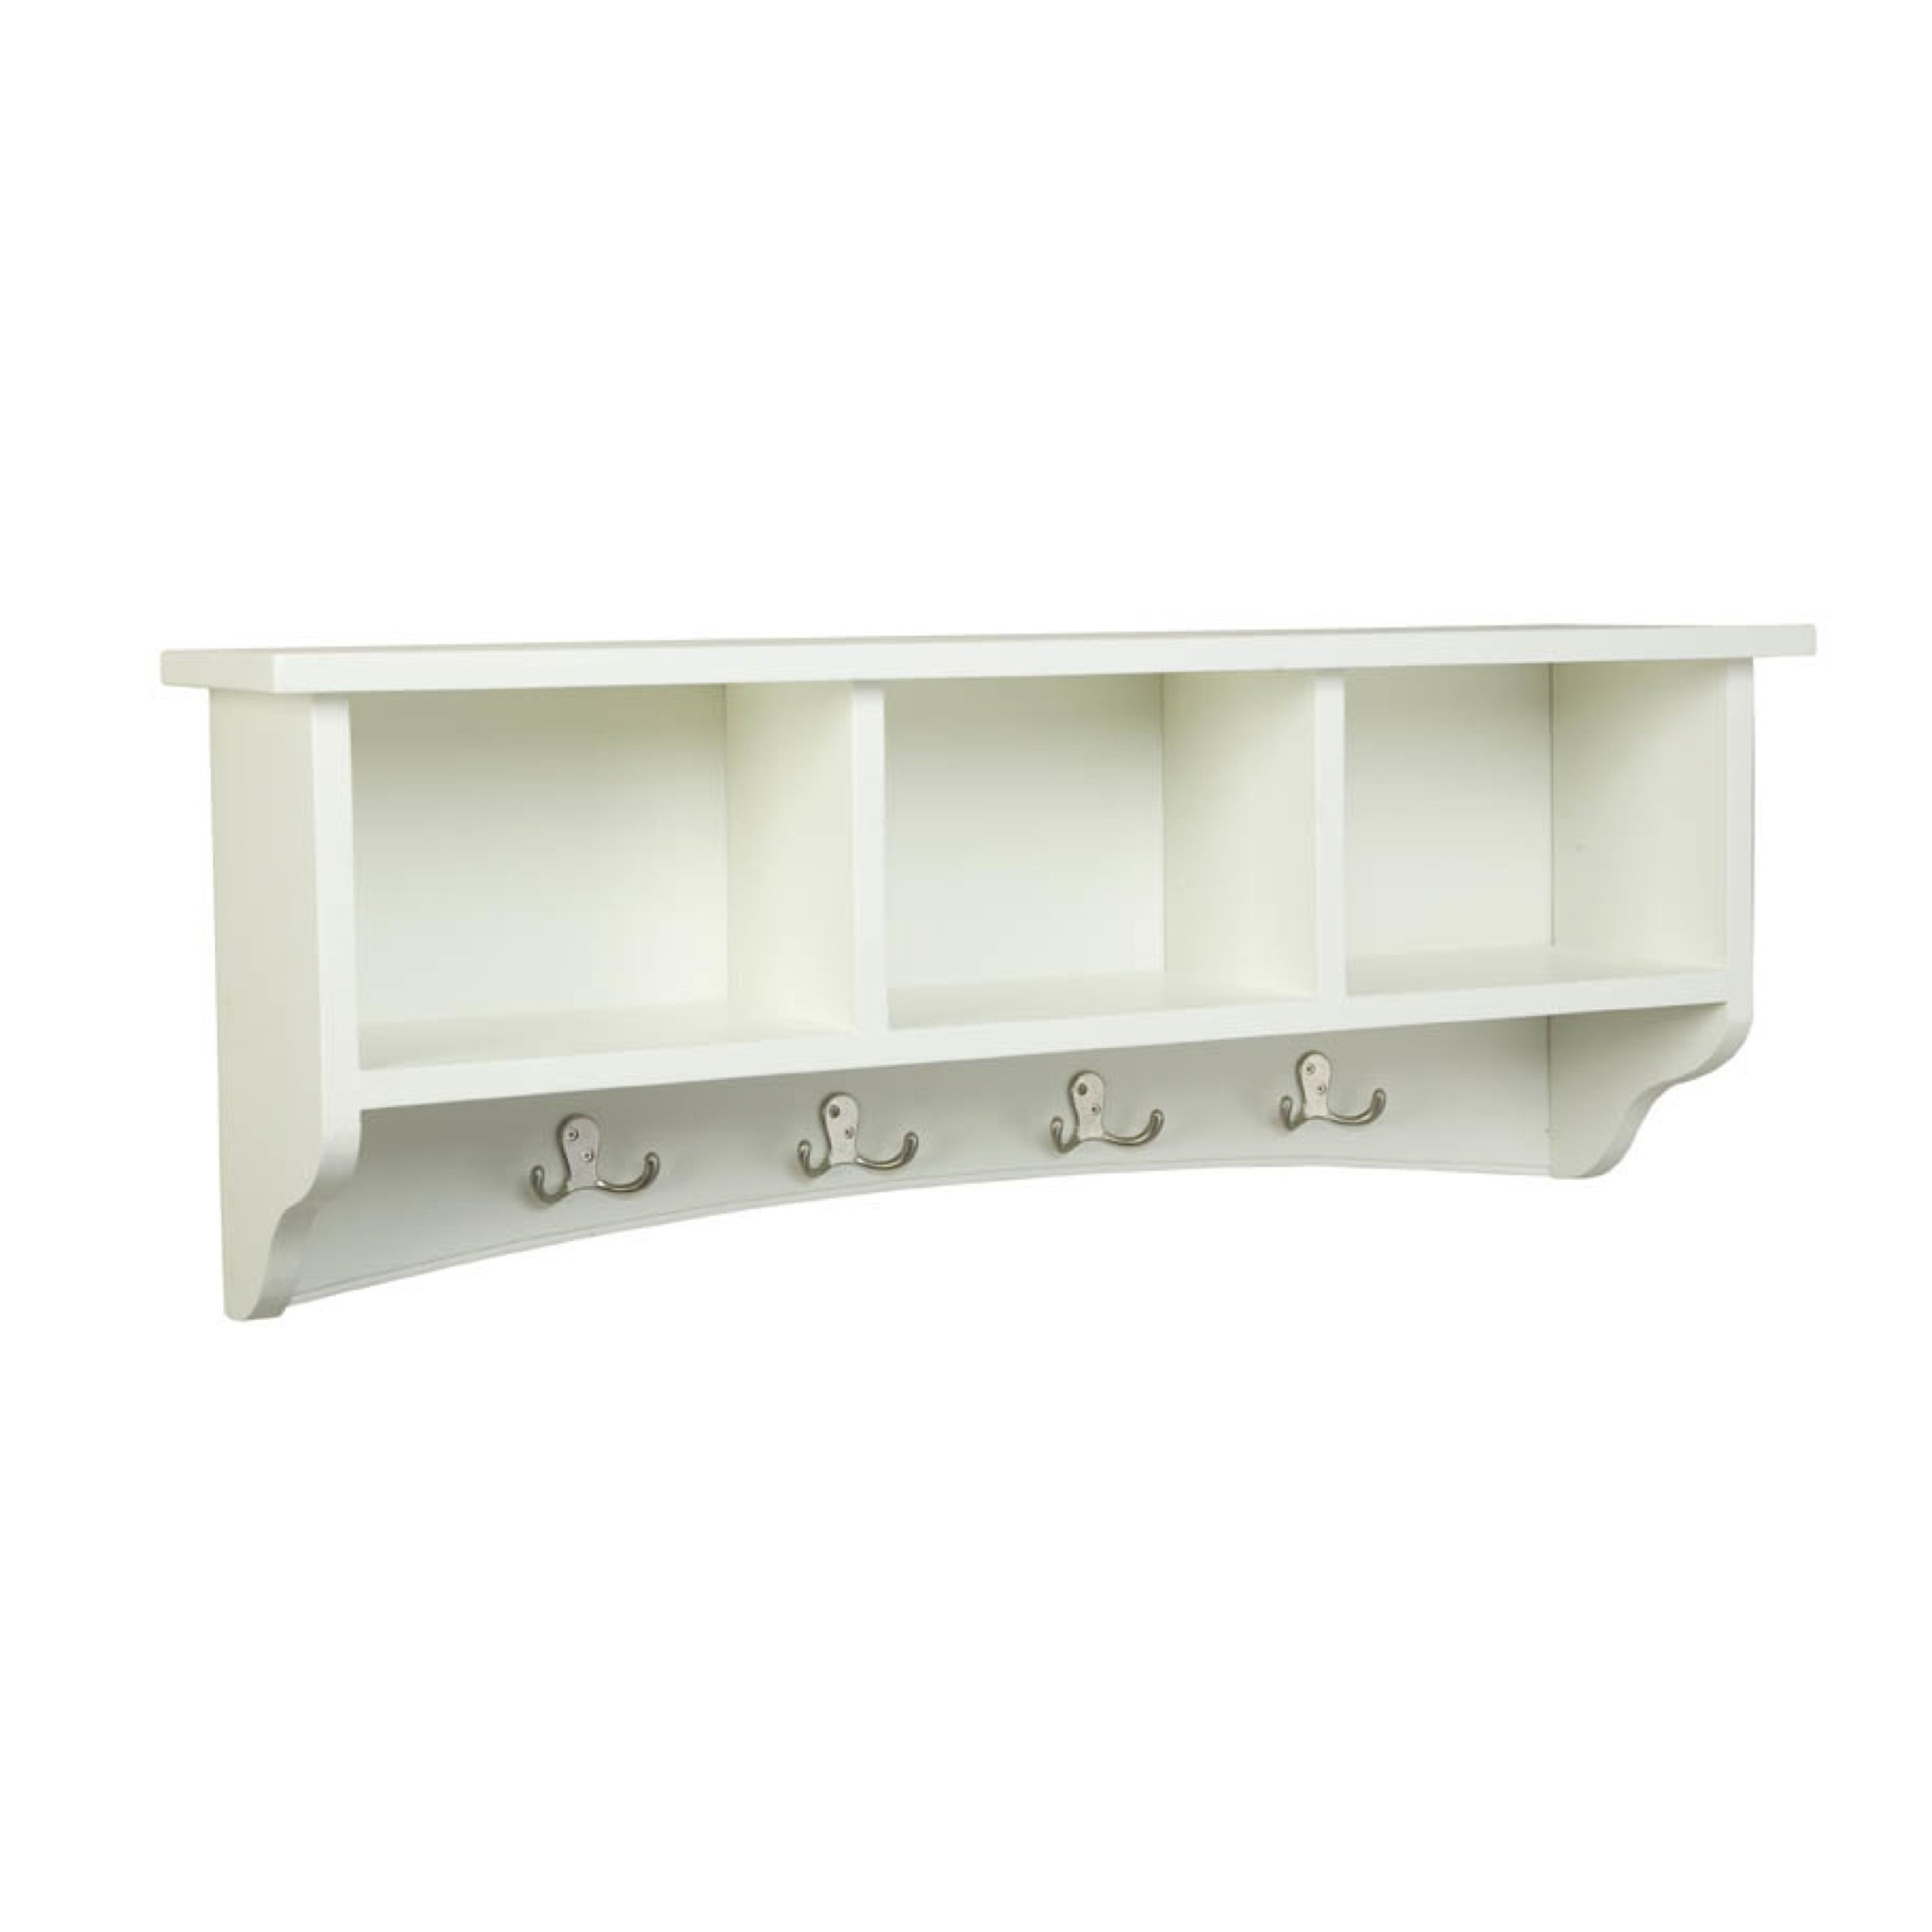 Shaker Cottage Wall Mounted Coat Hooks with 3 Cubbies, Ivory by Alaterre